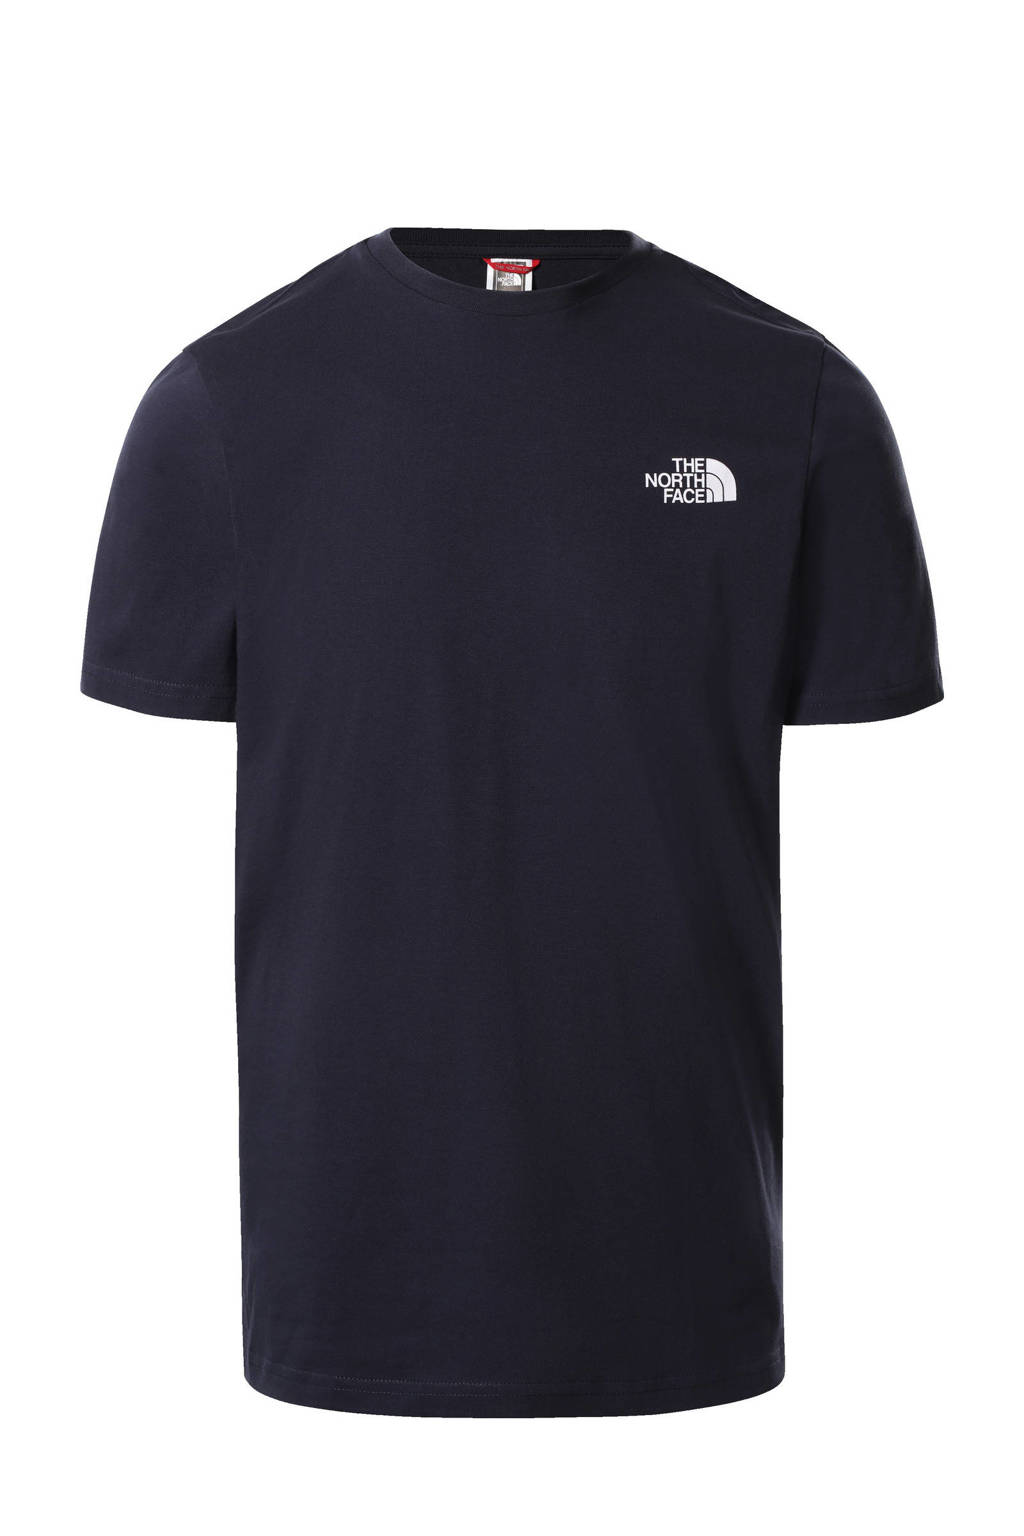 The North Face T-shirt Simple Dome donkerblauw, Donkerblauw